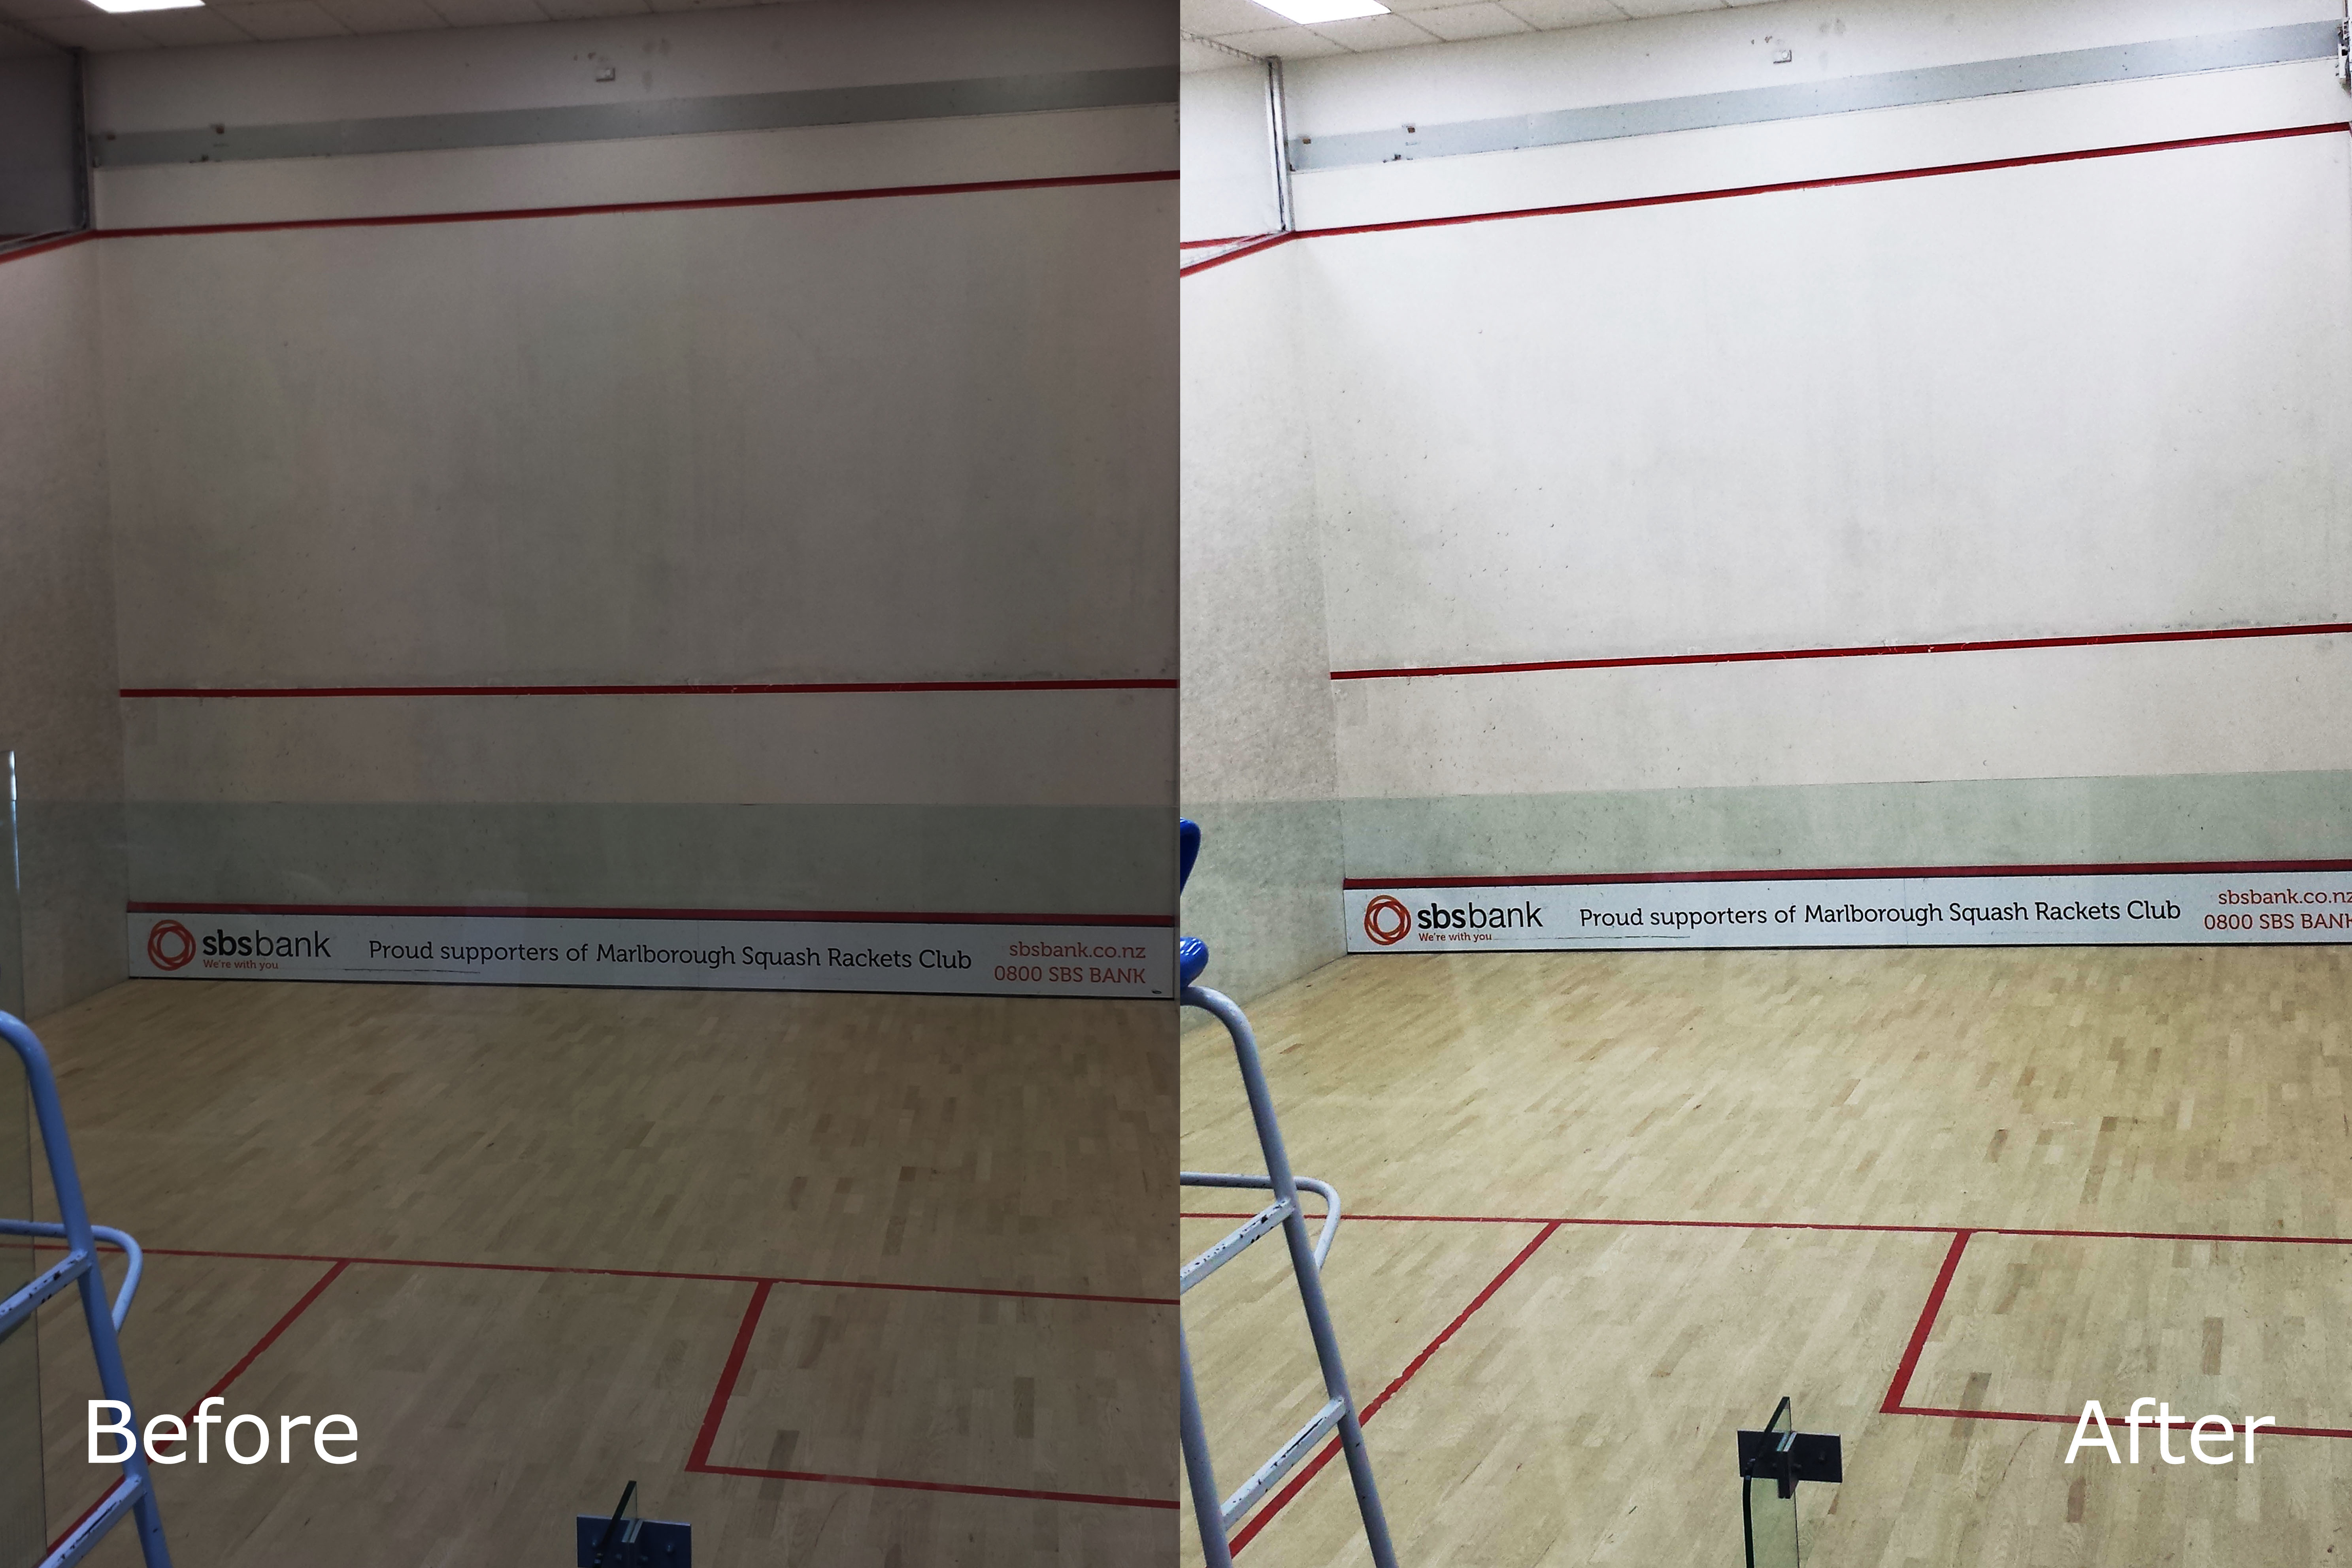 Before and after Stradium 2000 Squash court